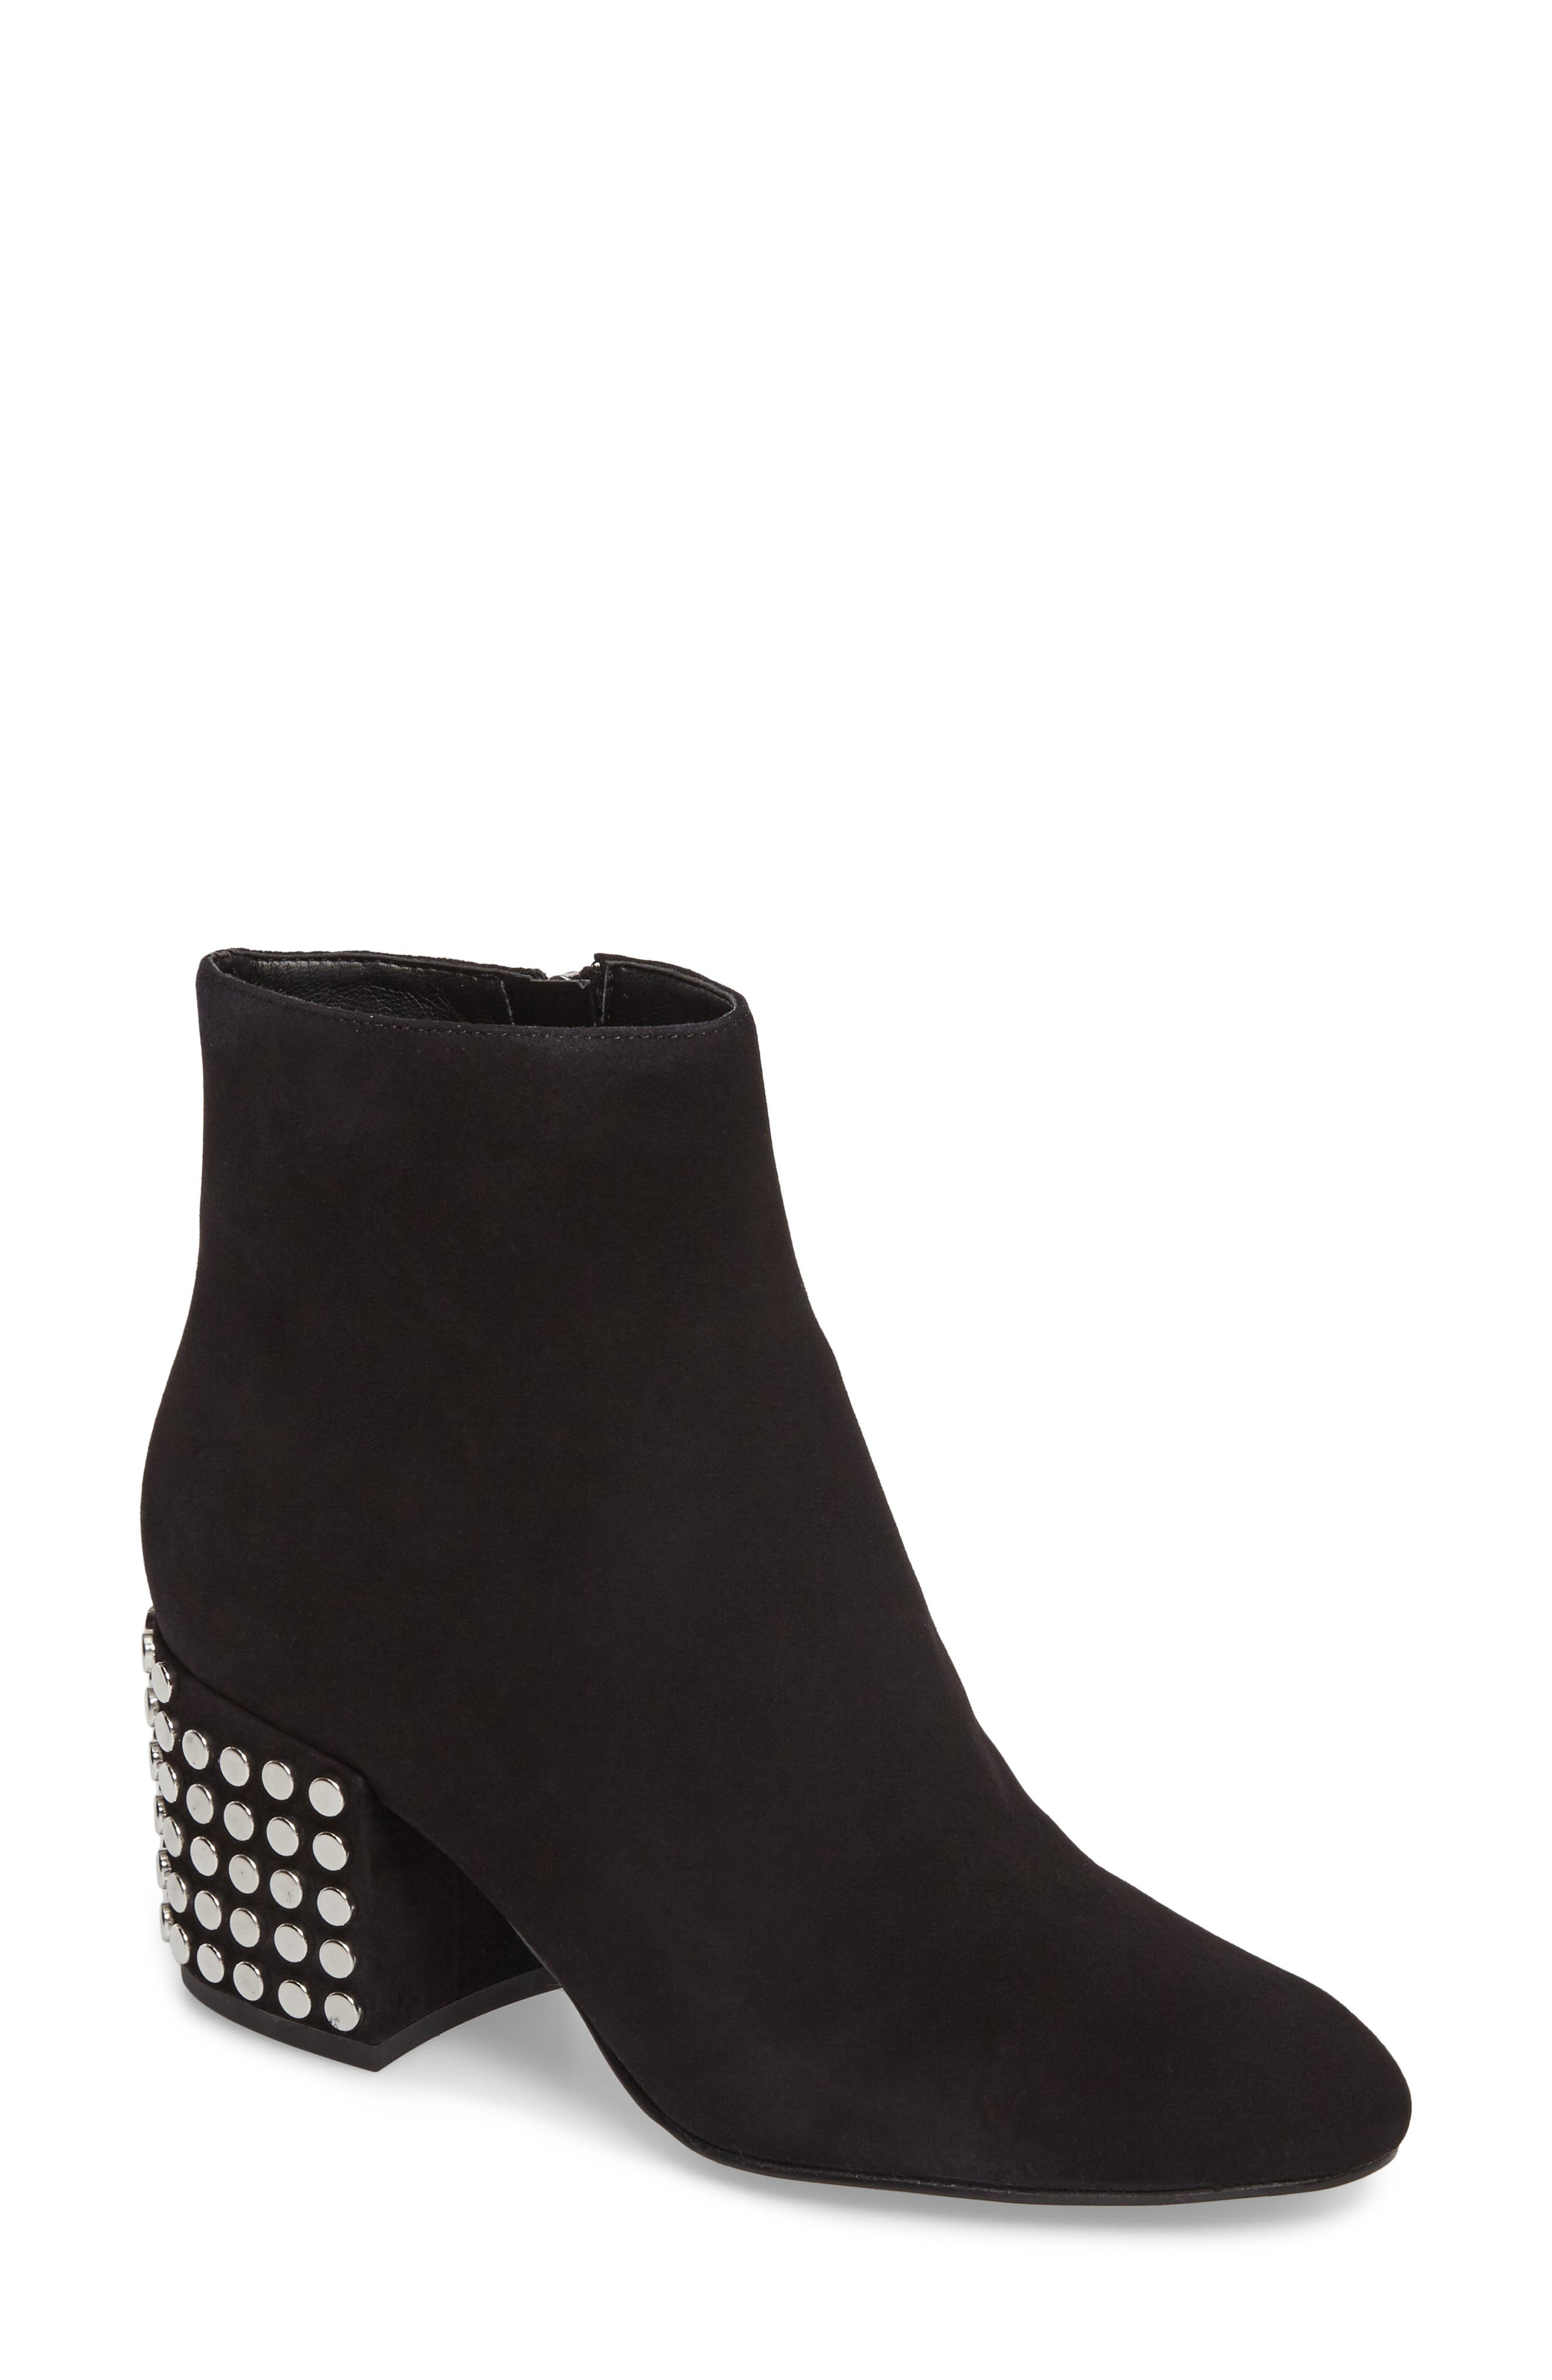 Blythe Studded Heel Bootie,                             Main thumbnail 1, color,                             001